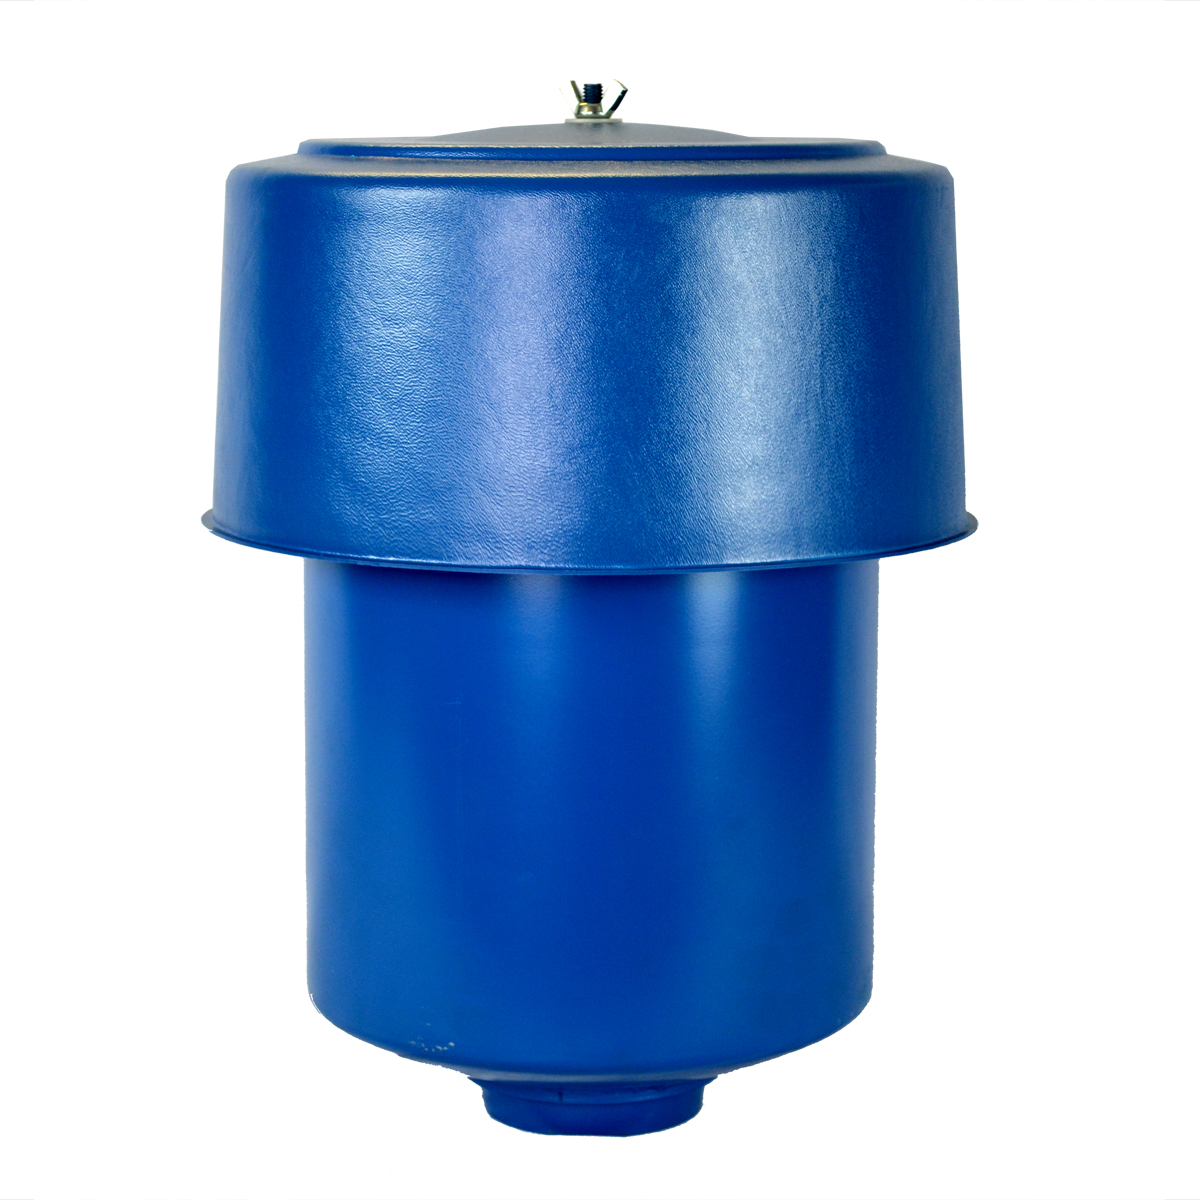 Air Filters For Blowers : Ccs fpt air filter silencer pdblowers inc